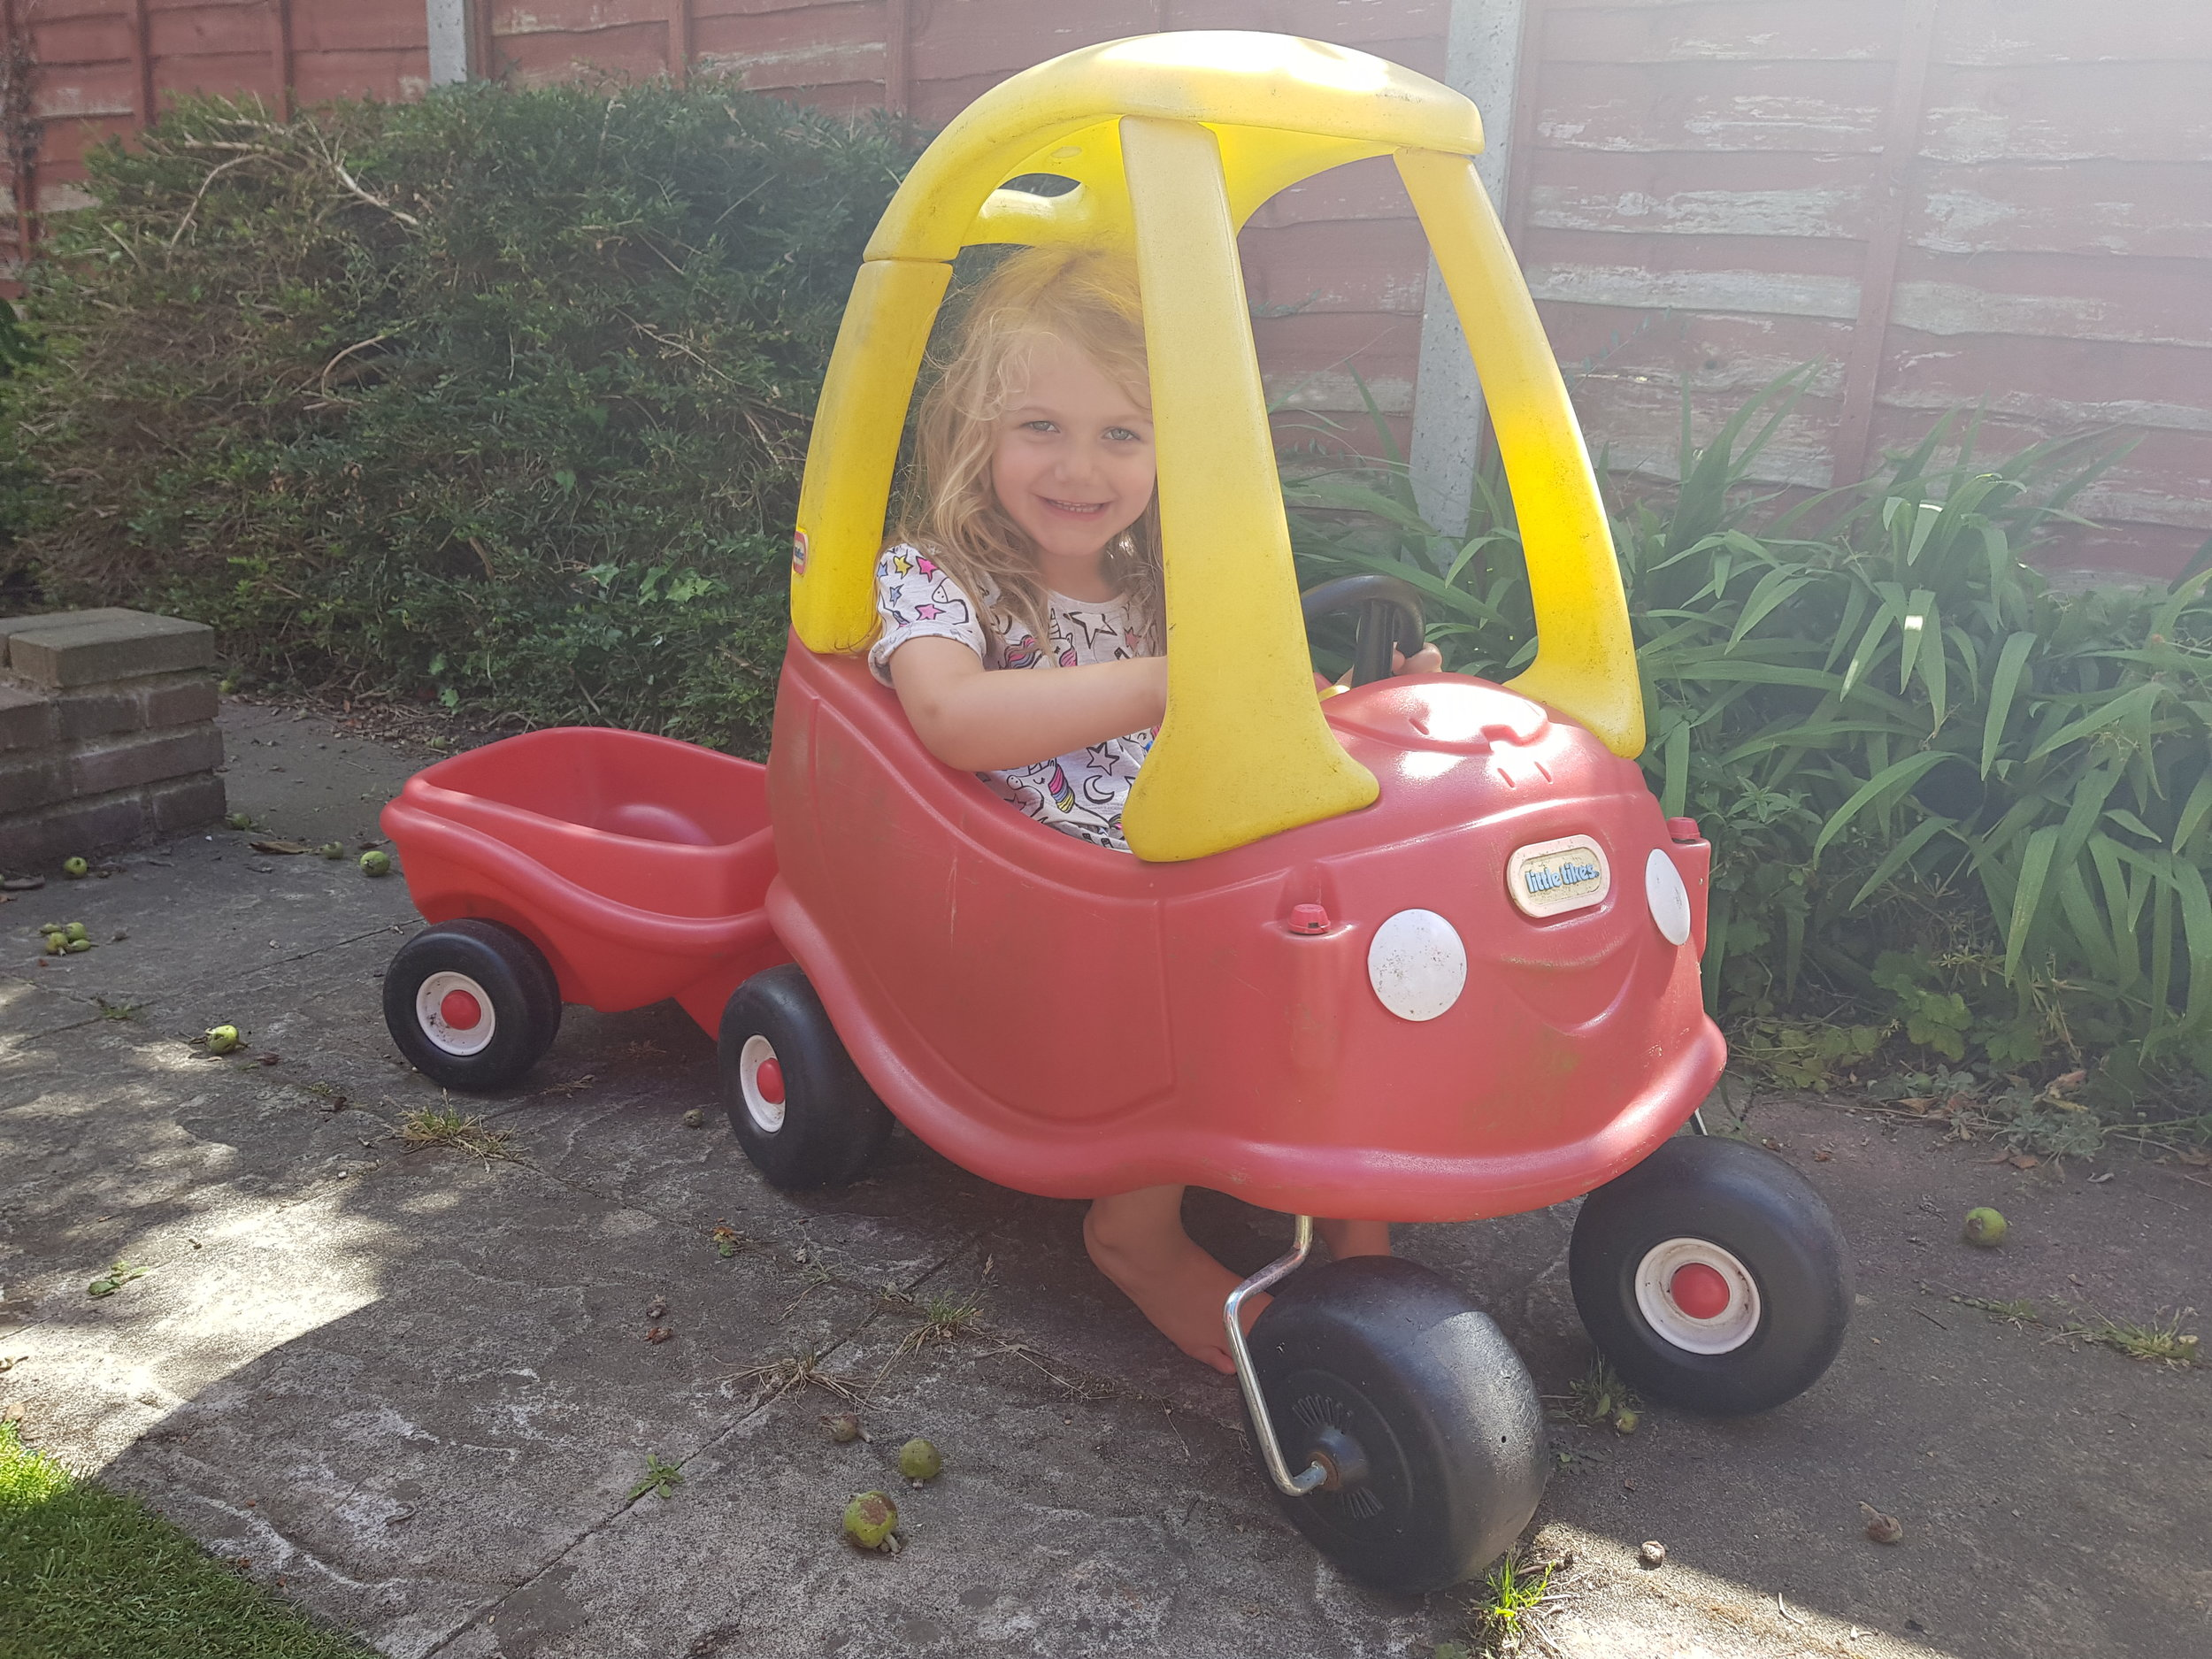 Little Tikes toy car and trailer in the garden